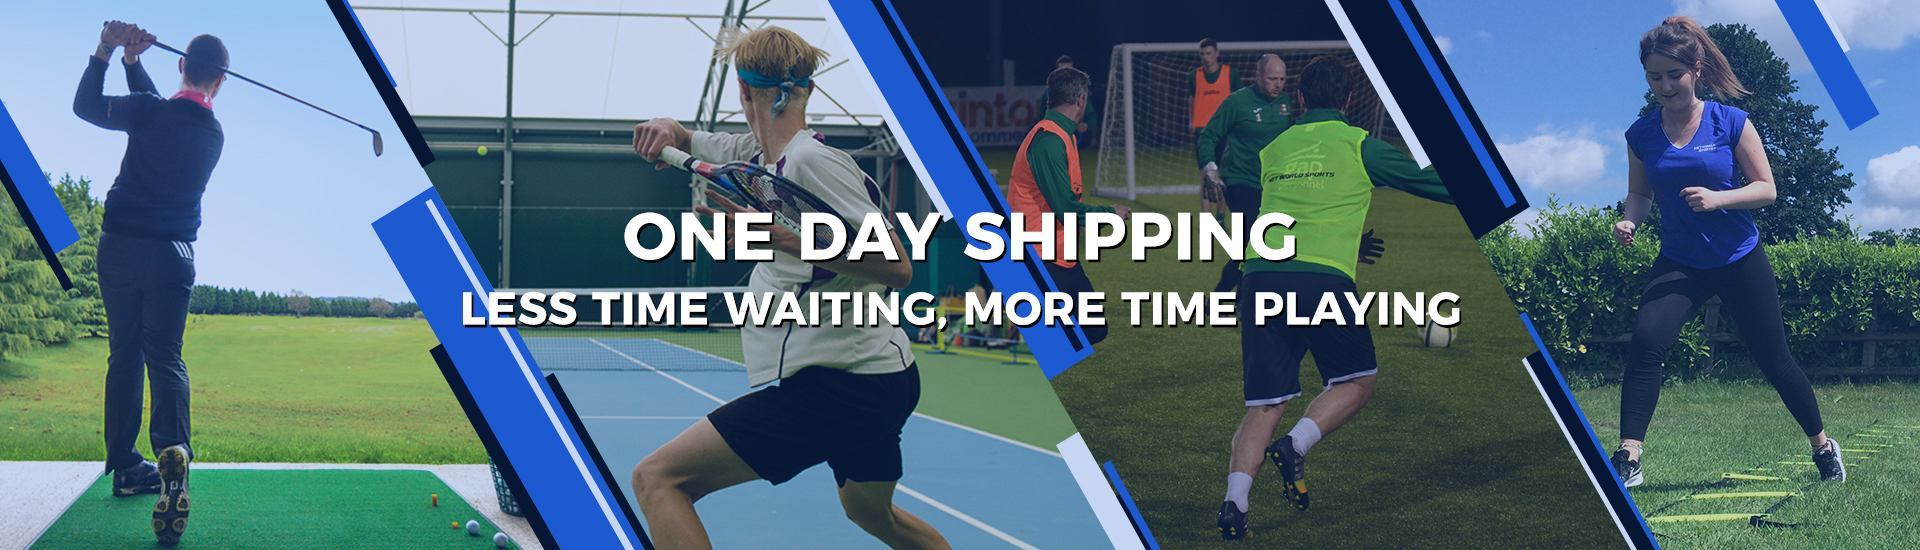 One day shipping